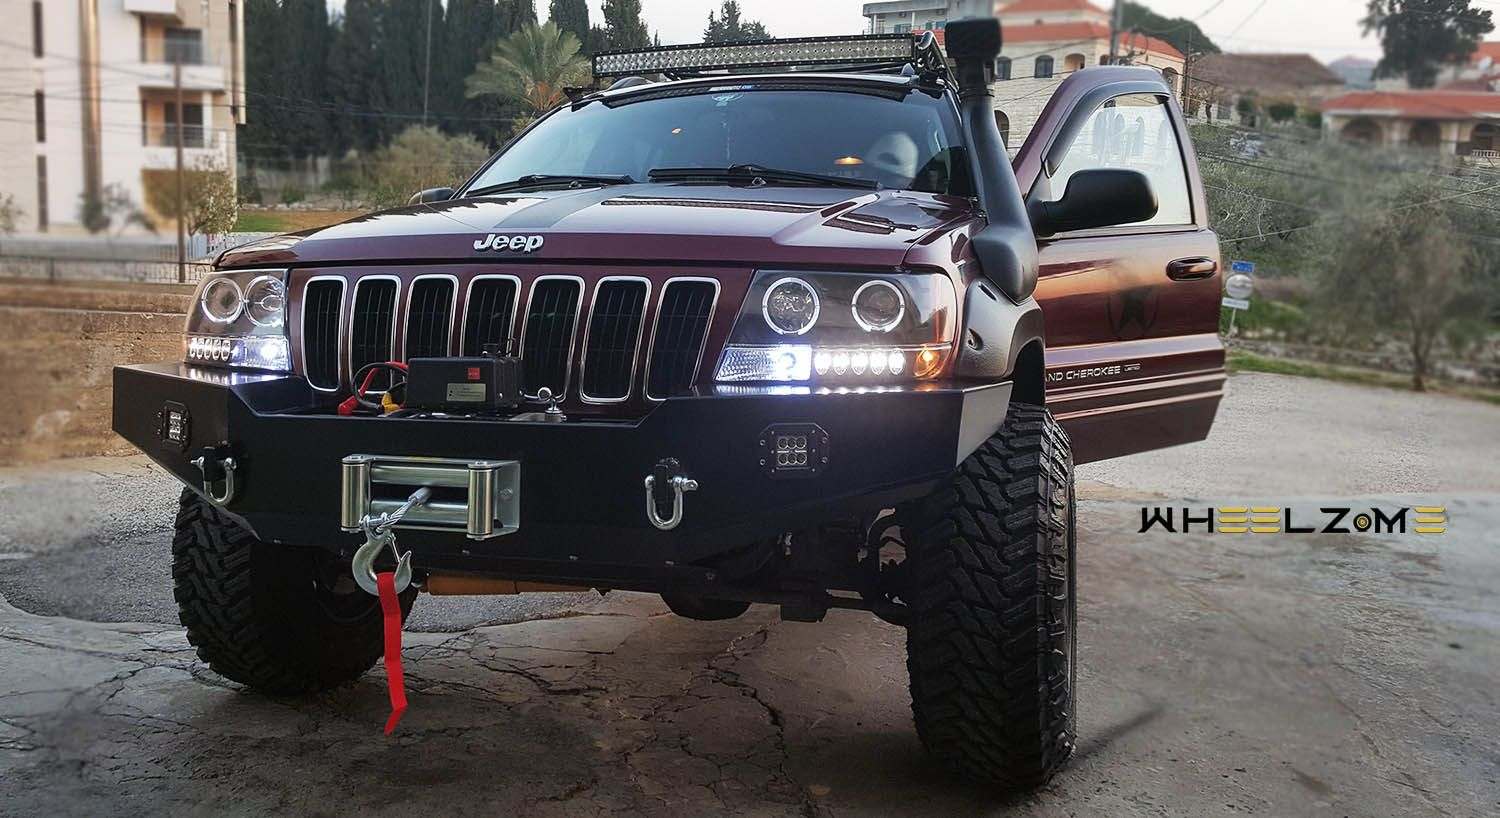 Http Wheelz Me Tag Jeep جيب غراند شيروكي ب تعديل رائع Jeep Grandcherokee Suv Tuning Crossover Offroader Offroad 4 Jeep Monster Trucks Sweet Ride